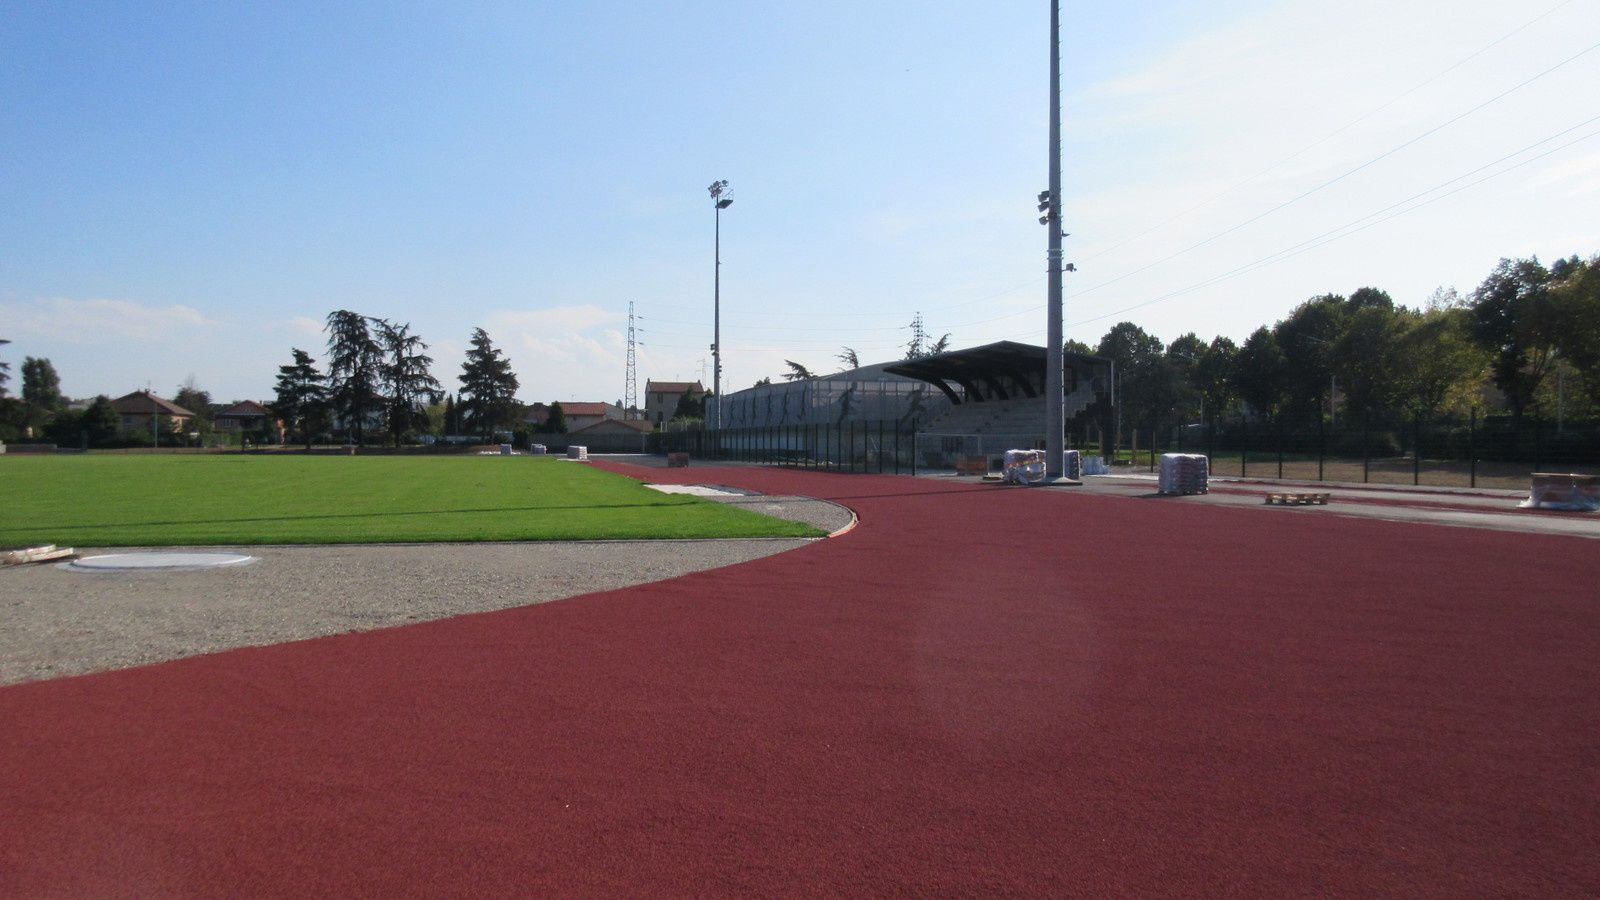 Plus que quelques semaines avant l'inauguration de la piste d'athlétisme du stade Laurent-Gerin - Photo: YR et Sports Vénissians